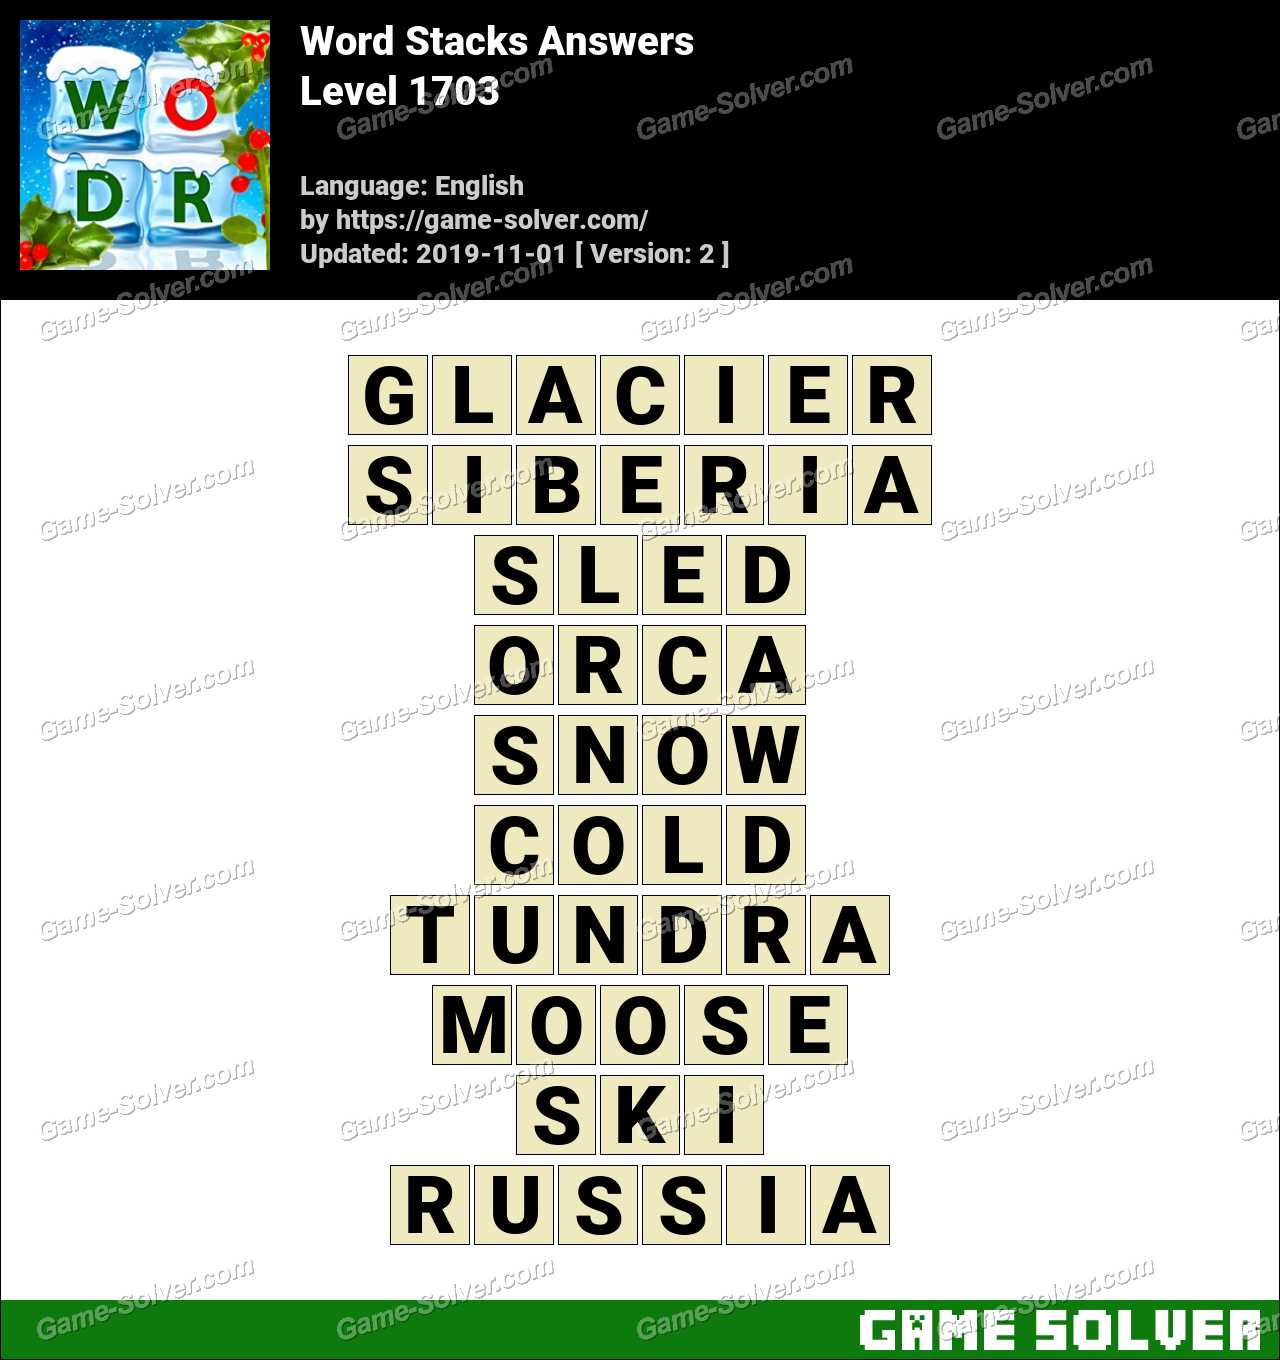 Word Stacks Level 1703 Answers